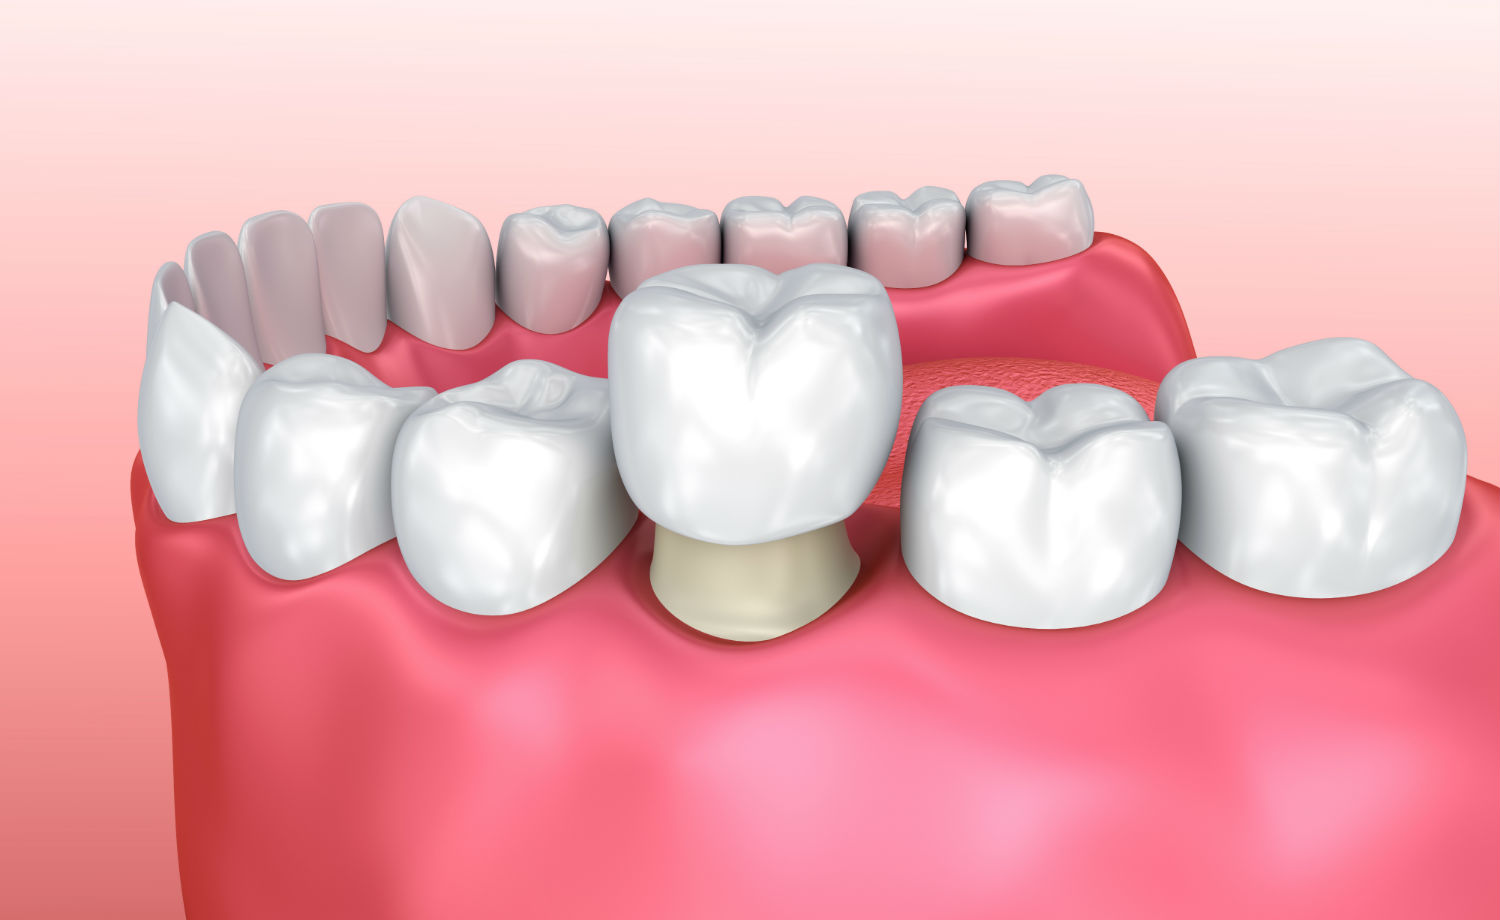 animated image of dental crowns